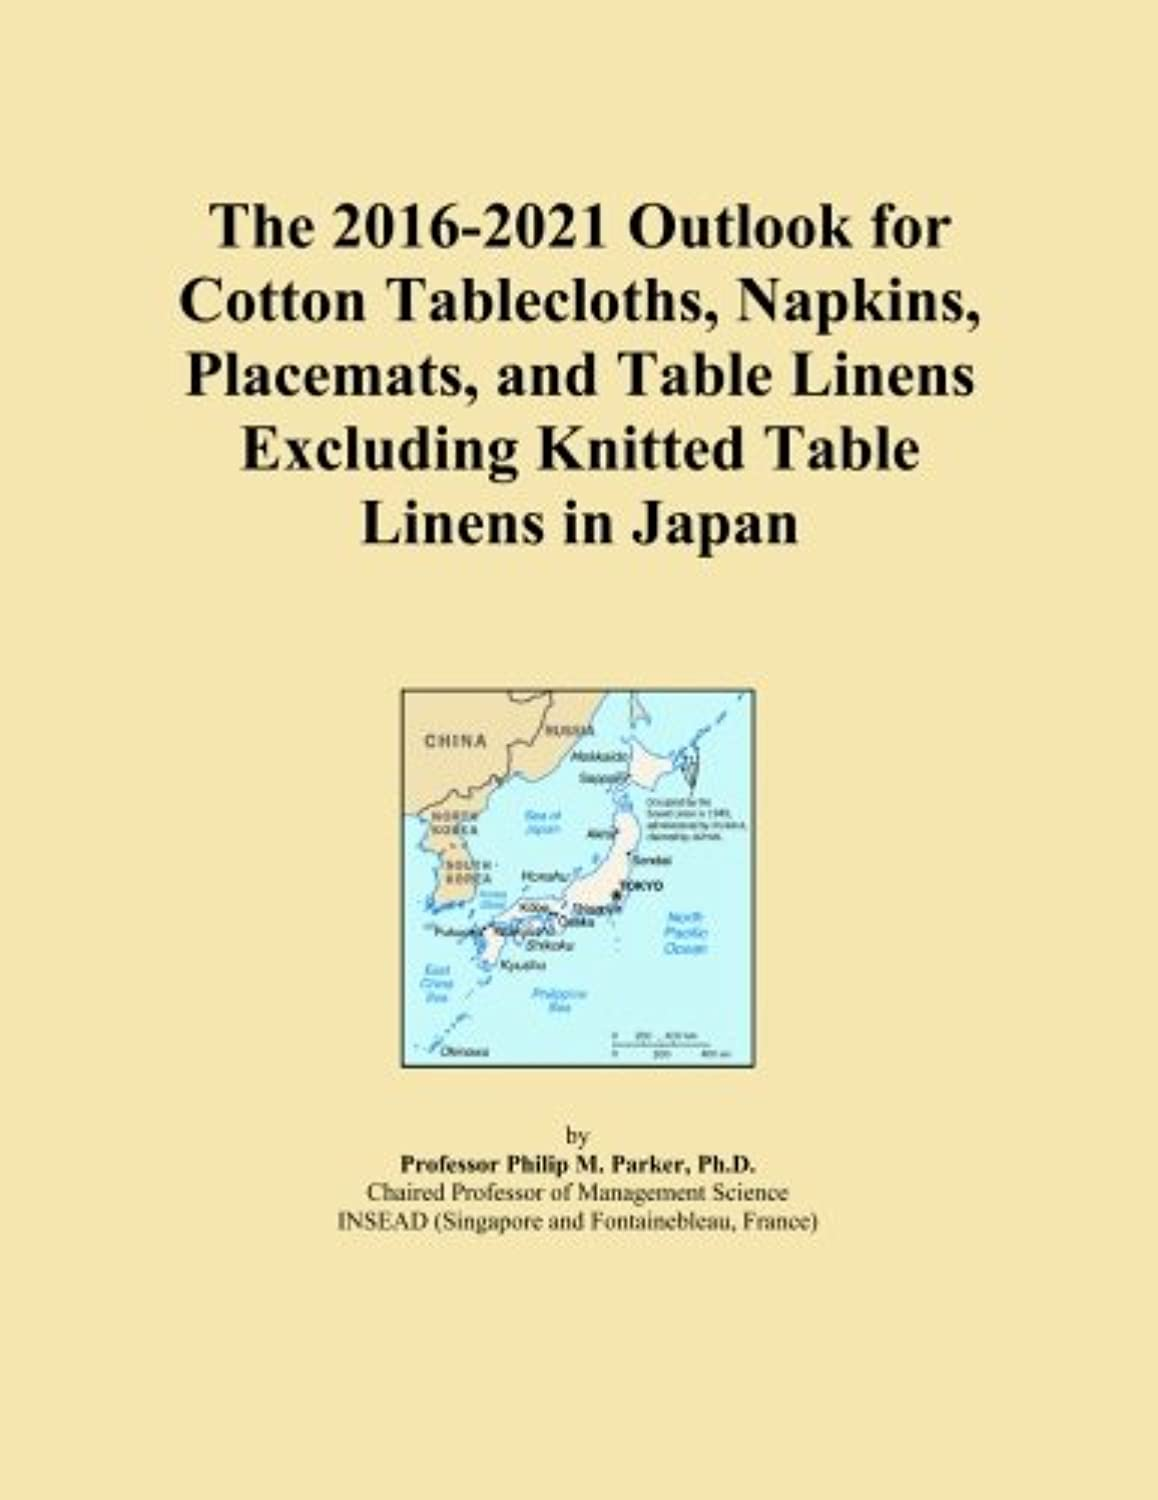 The 2016-2021 Outlook for Cotton Tablecloths, Napkins, Placemats, and Table Linens Excluding Knitted Table Linens in Japan